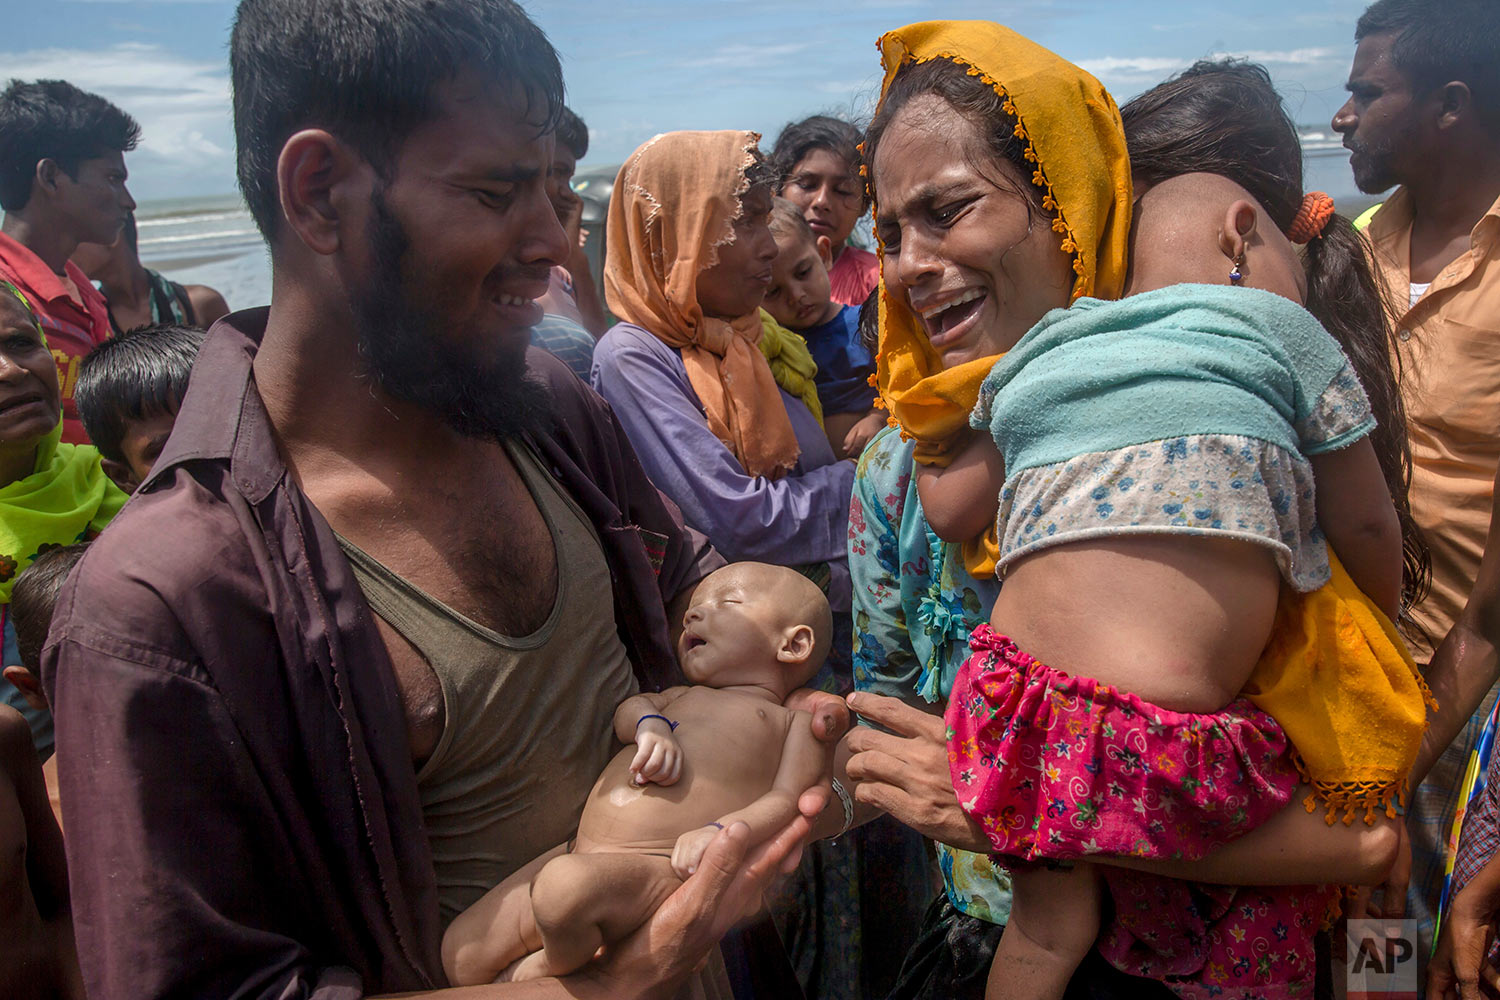 A Rohingya Muslim man Naseer Ud Din holds his infant son Abdul Masood, who drowned when the boat they were traveling in capsized just before reaching the shore, as his wife Hanida Begum cries upon reaching the Bay of Bengal shore in Shah Porir Dwip, Bangladesh, Thursday, Sept. 14, 2017.  (AP Photo/Dar Yasin)